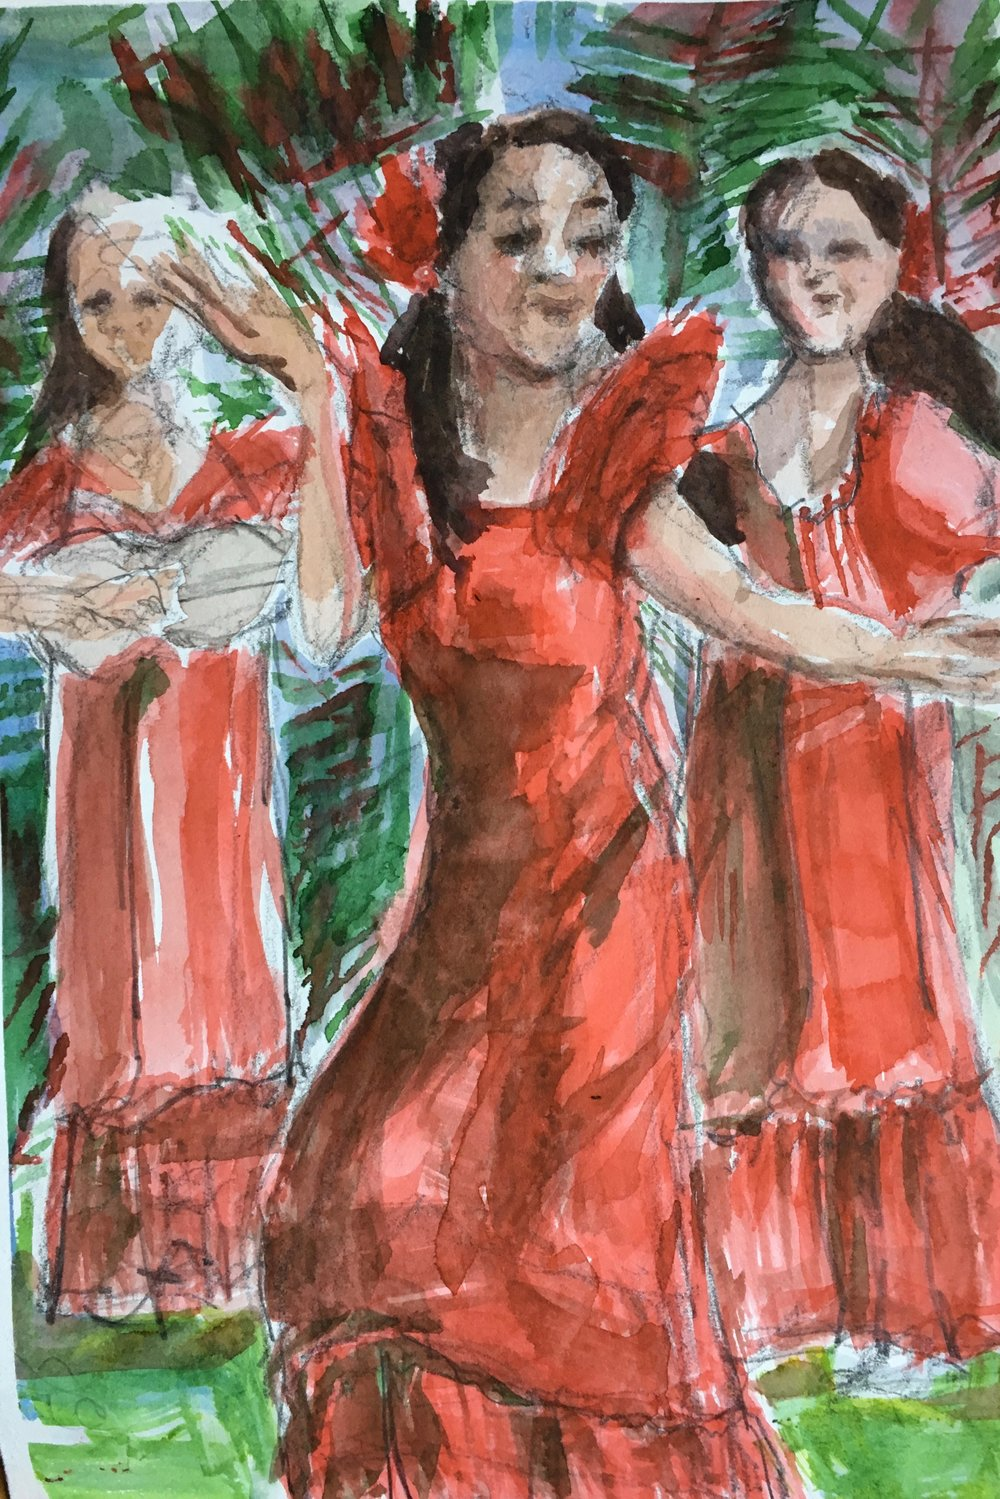 Red Hula Dancers